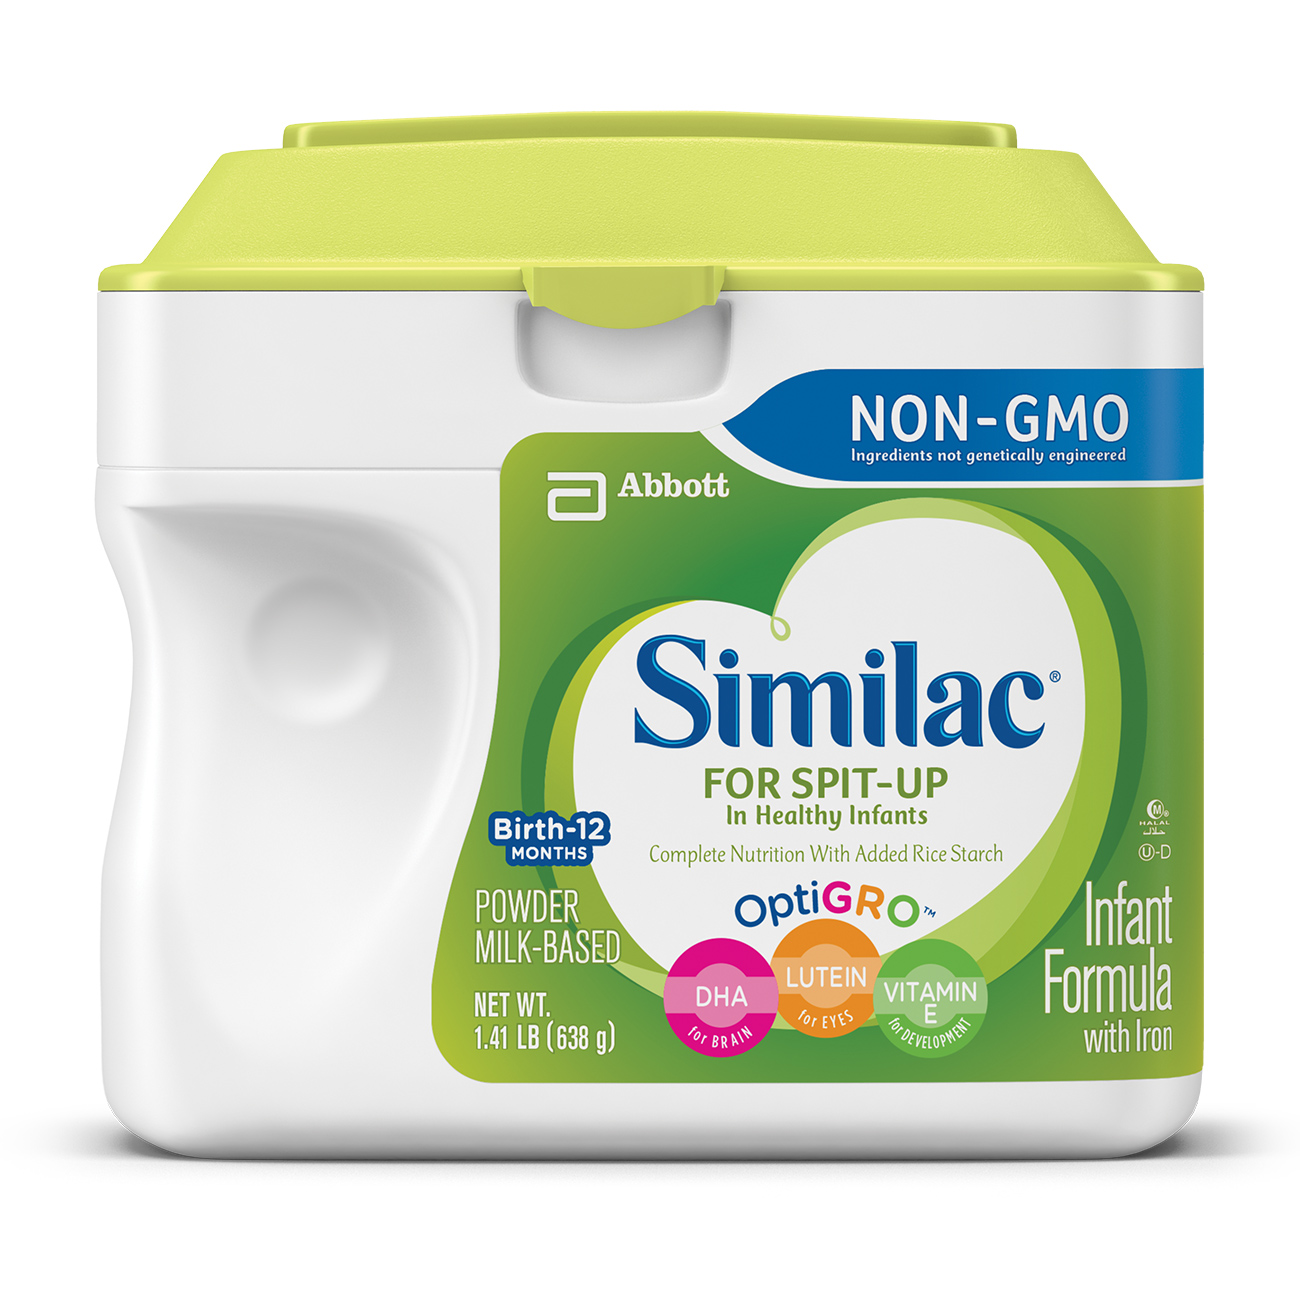 Similac For Spit-Up Infant Formula (6 Pack) w/ Iron, Powder, 1.41 lb NON-GMO